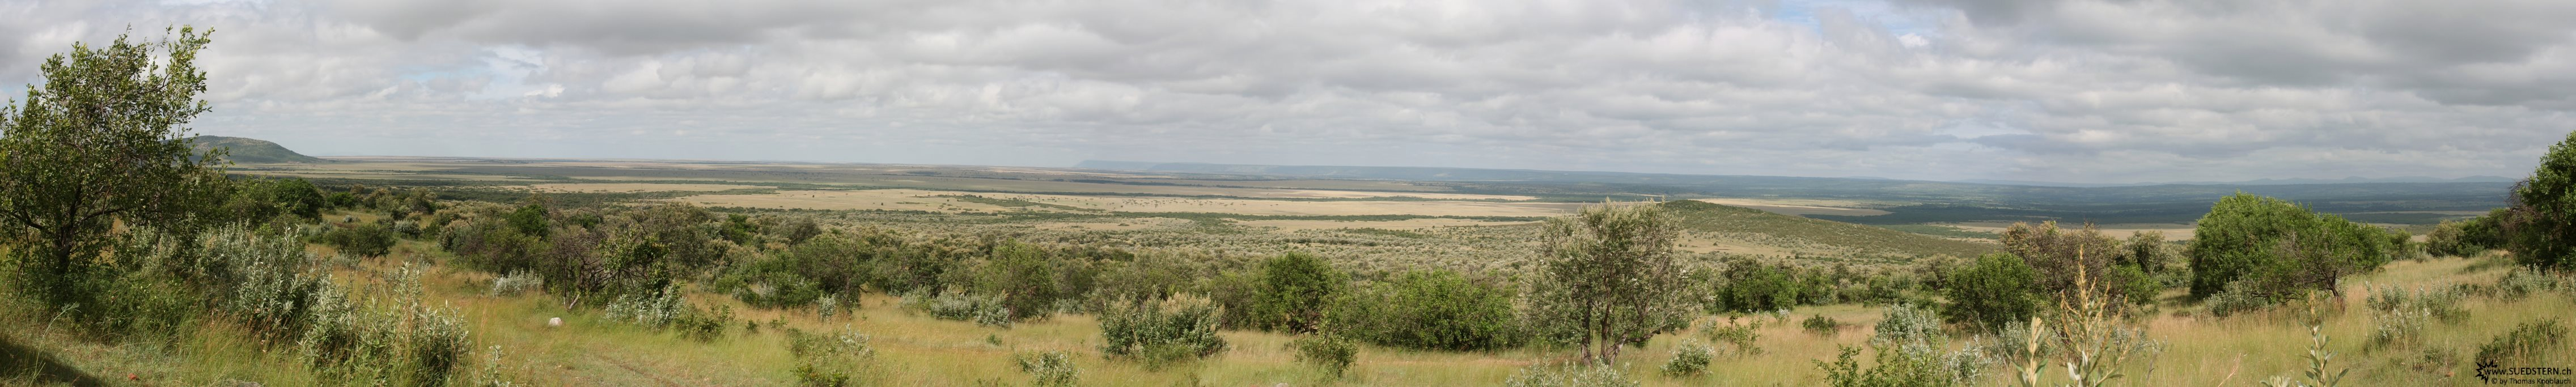 2007-04-14 - Kenya - Massai Mara from Hill Panorama